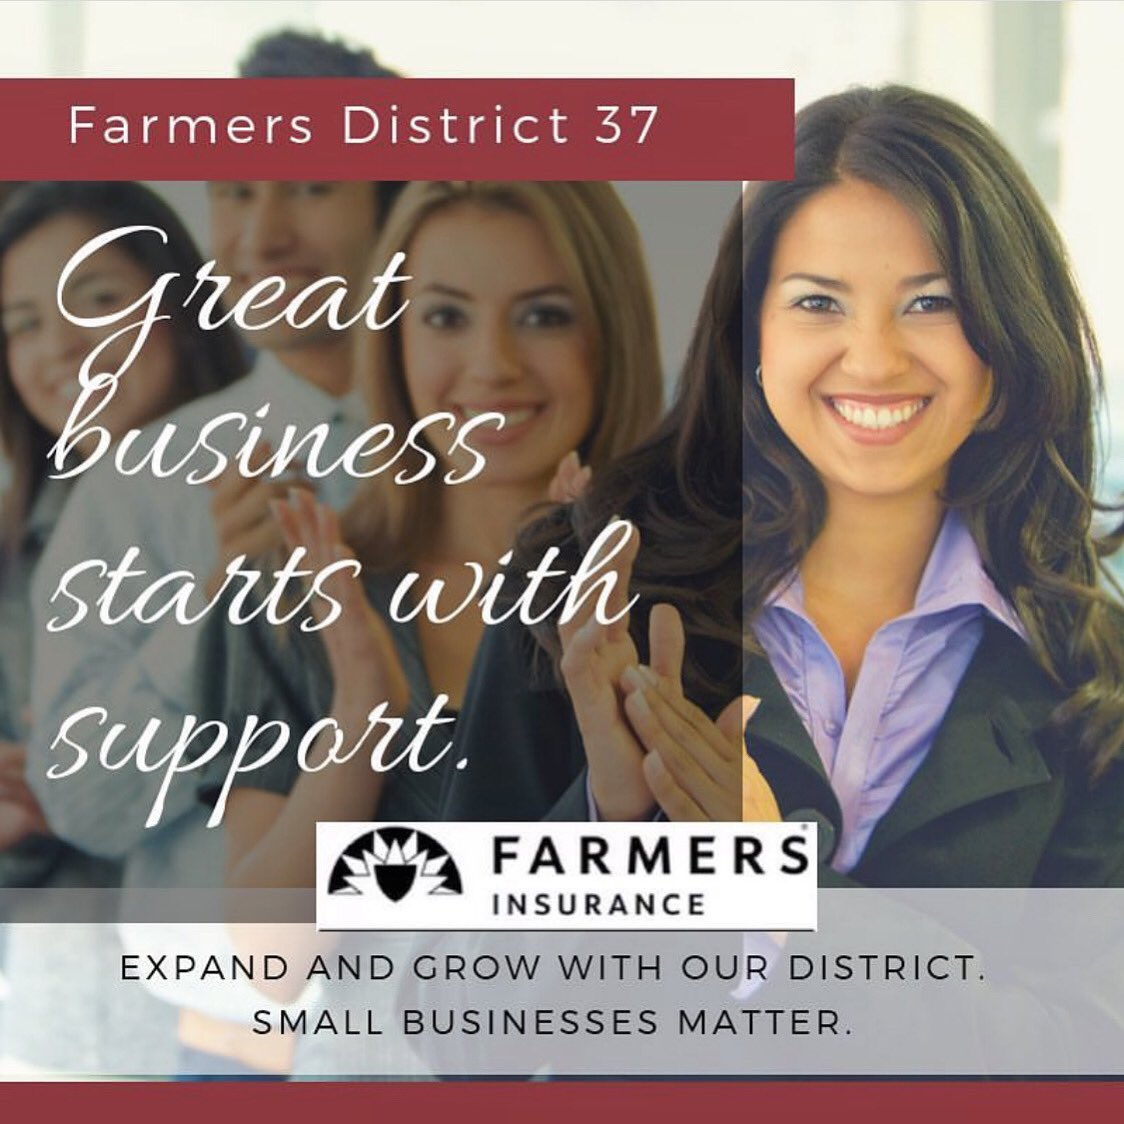 Join our District and you will have access to knowledgeable professionals to help support your business and the backing of a strong and respected brand! • • #farmersinsurance  #network #connect #atxlife #atx #austin #texas #autogramtags #mondaymotivation #opportunity